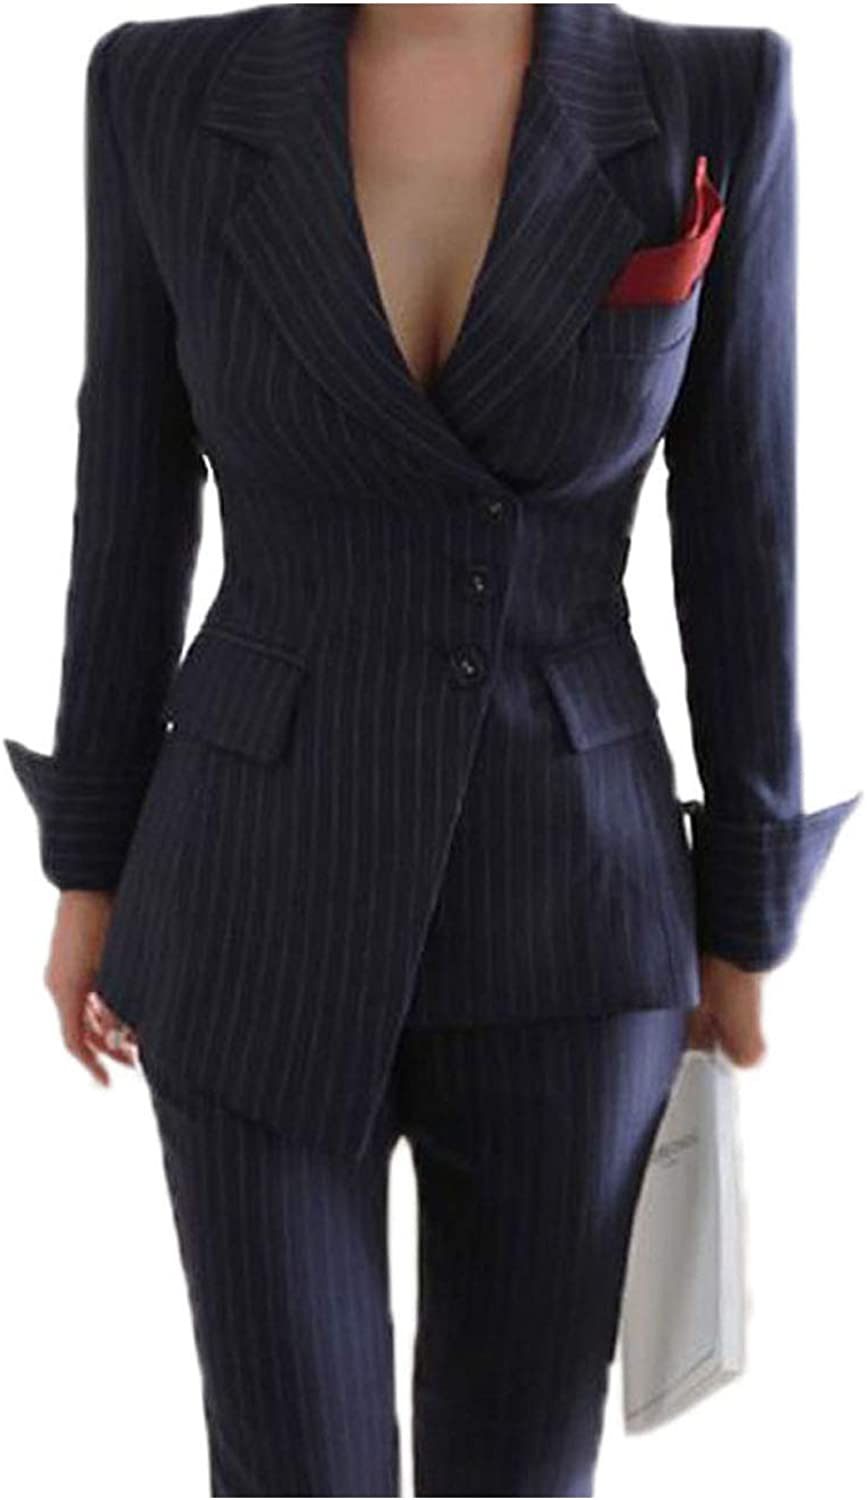 JYDress Women's Irregular Striped Pant Suits Slim Jacket Pant 2 Pieces Set Female Wear